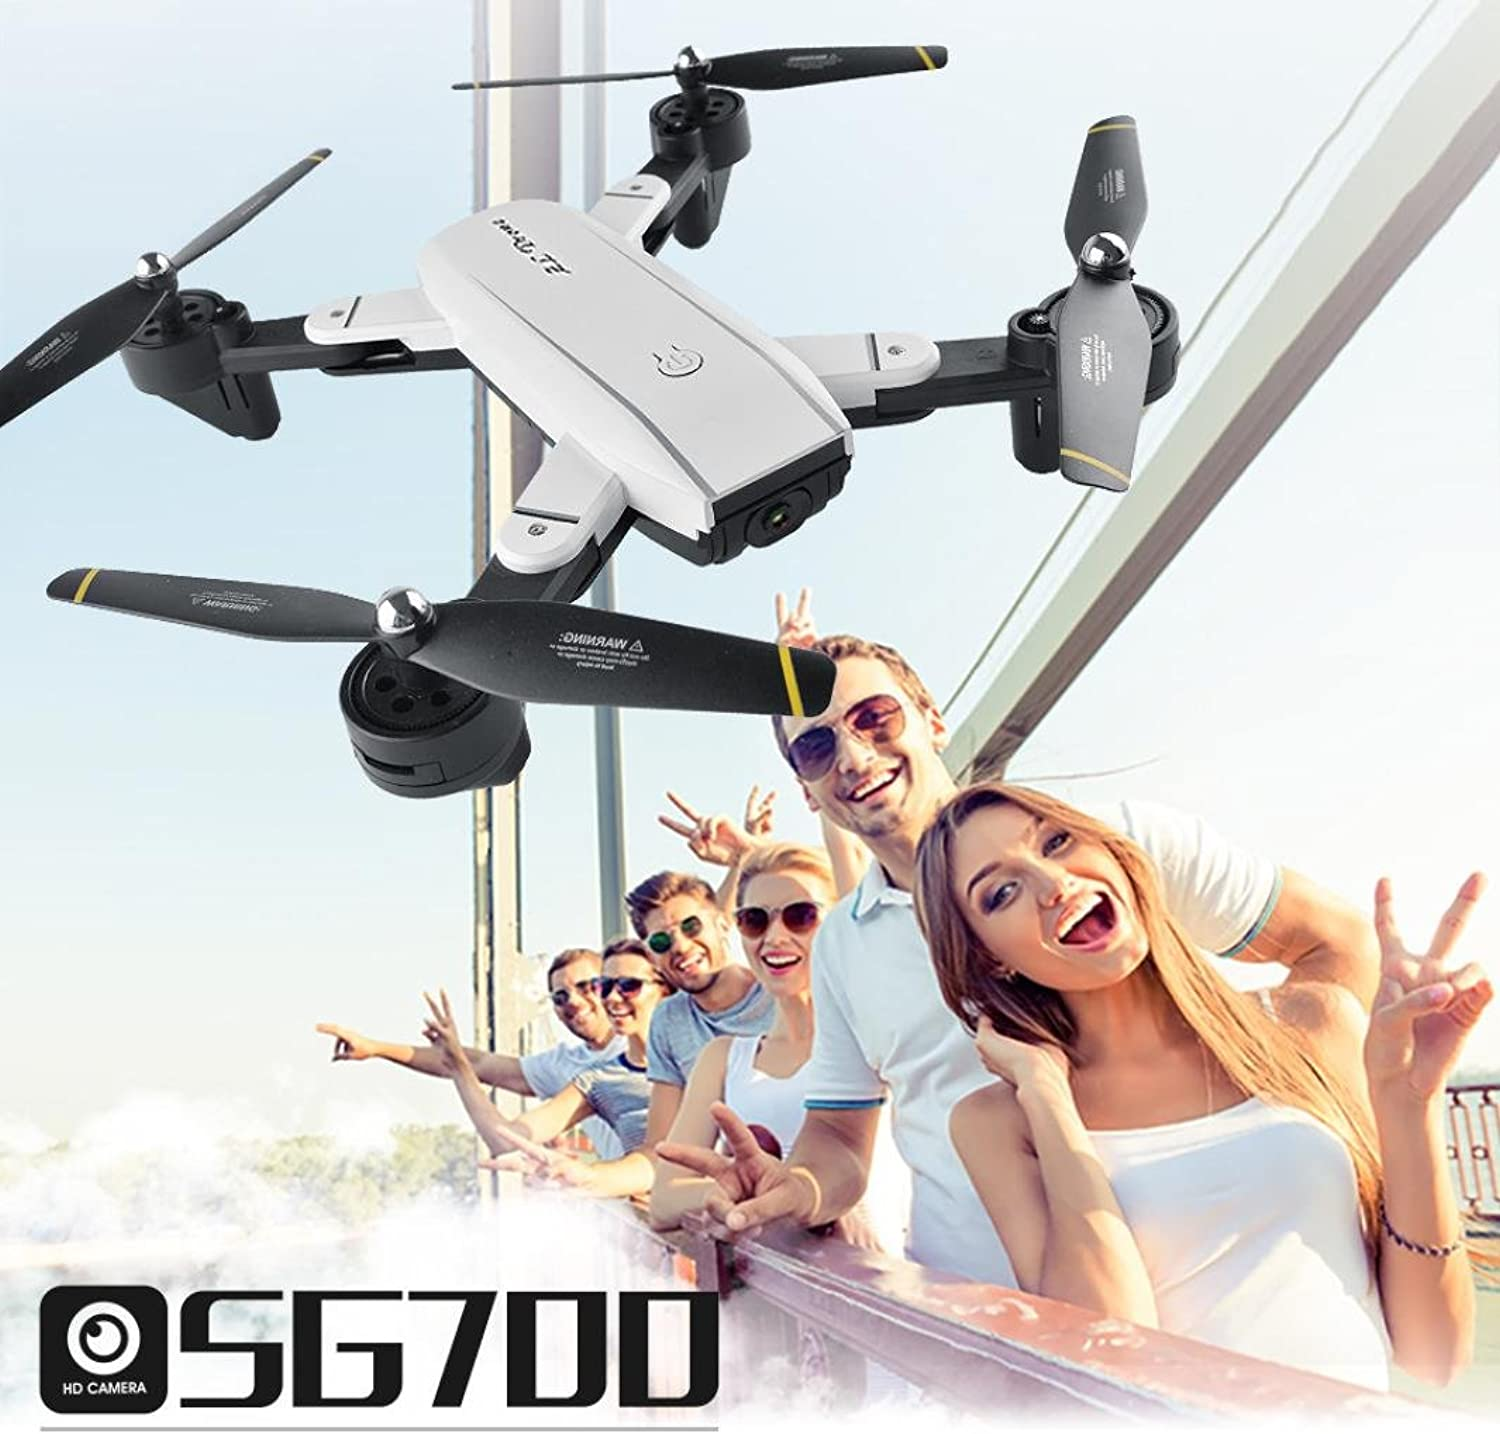 MuSheng TM SG700 Helicopter Quadcopter Drone 2.4Ghz 4 CH 6Axis Gyro 360° Hold WiFi 2.0MP Optical Flow Dual Camera